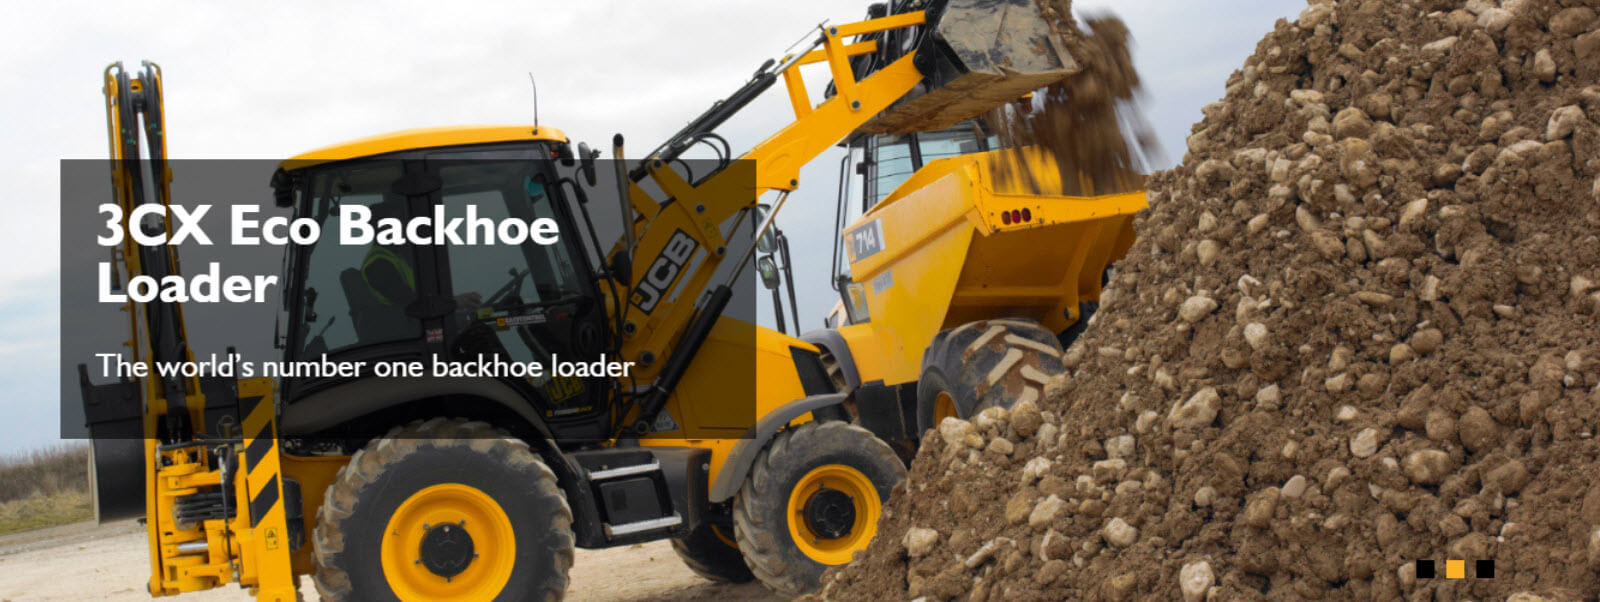 3cx eco backhoe loader